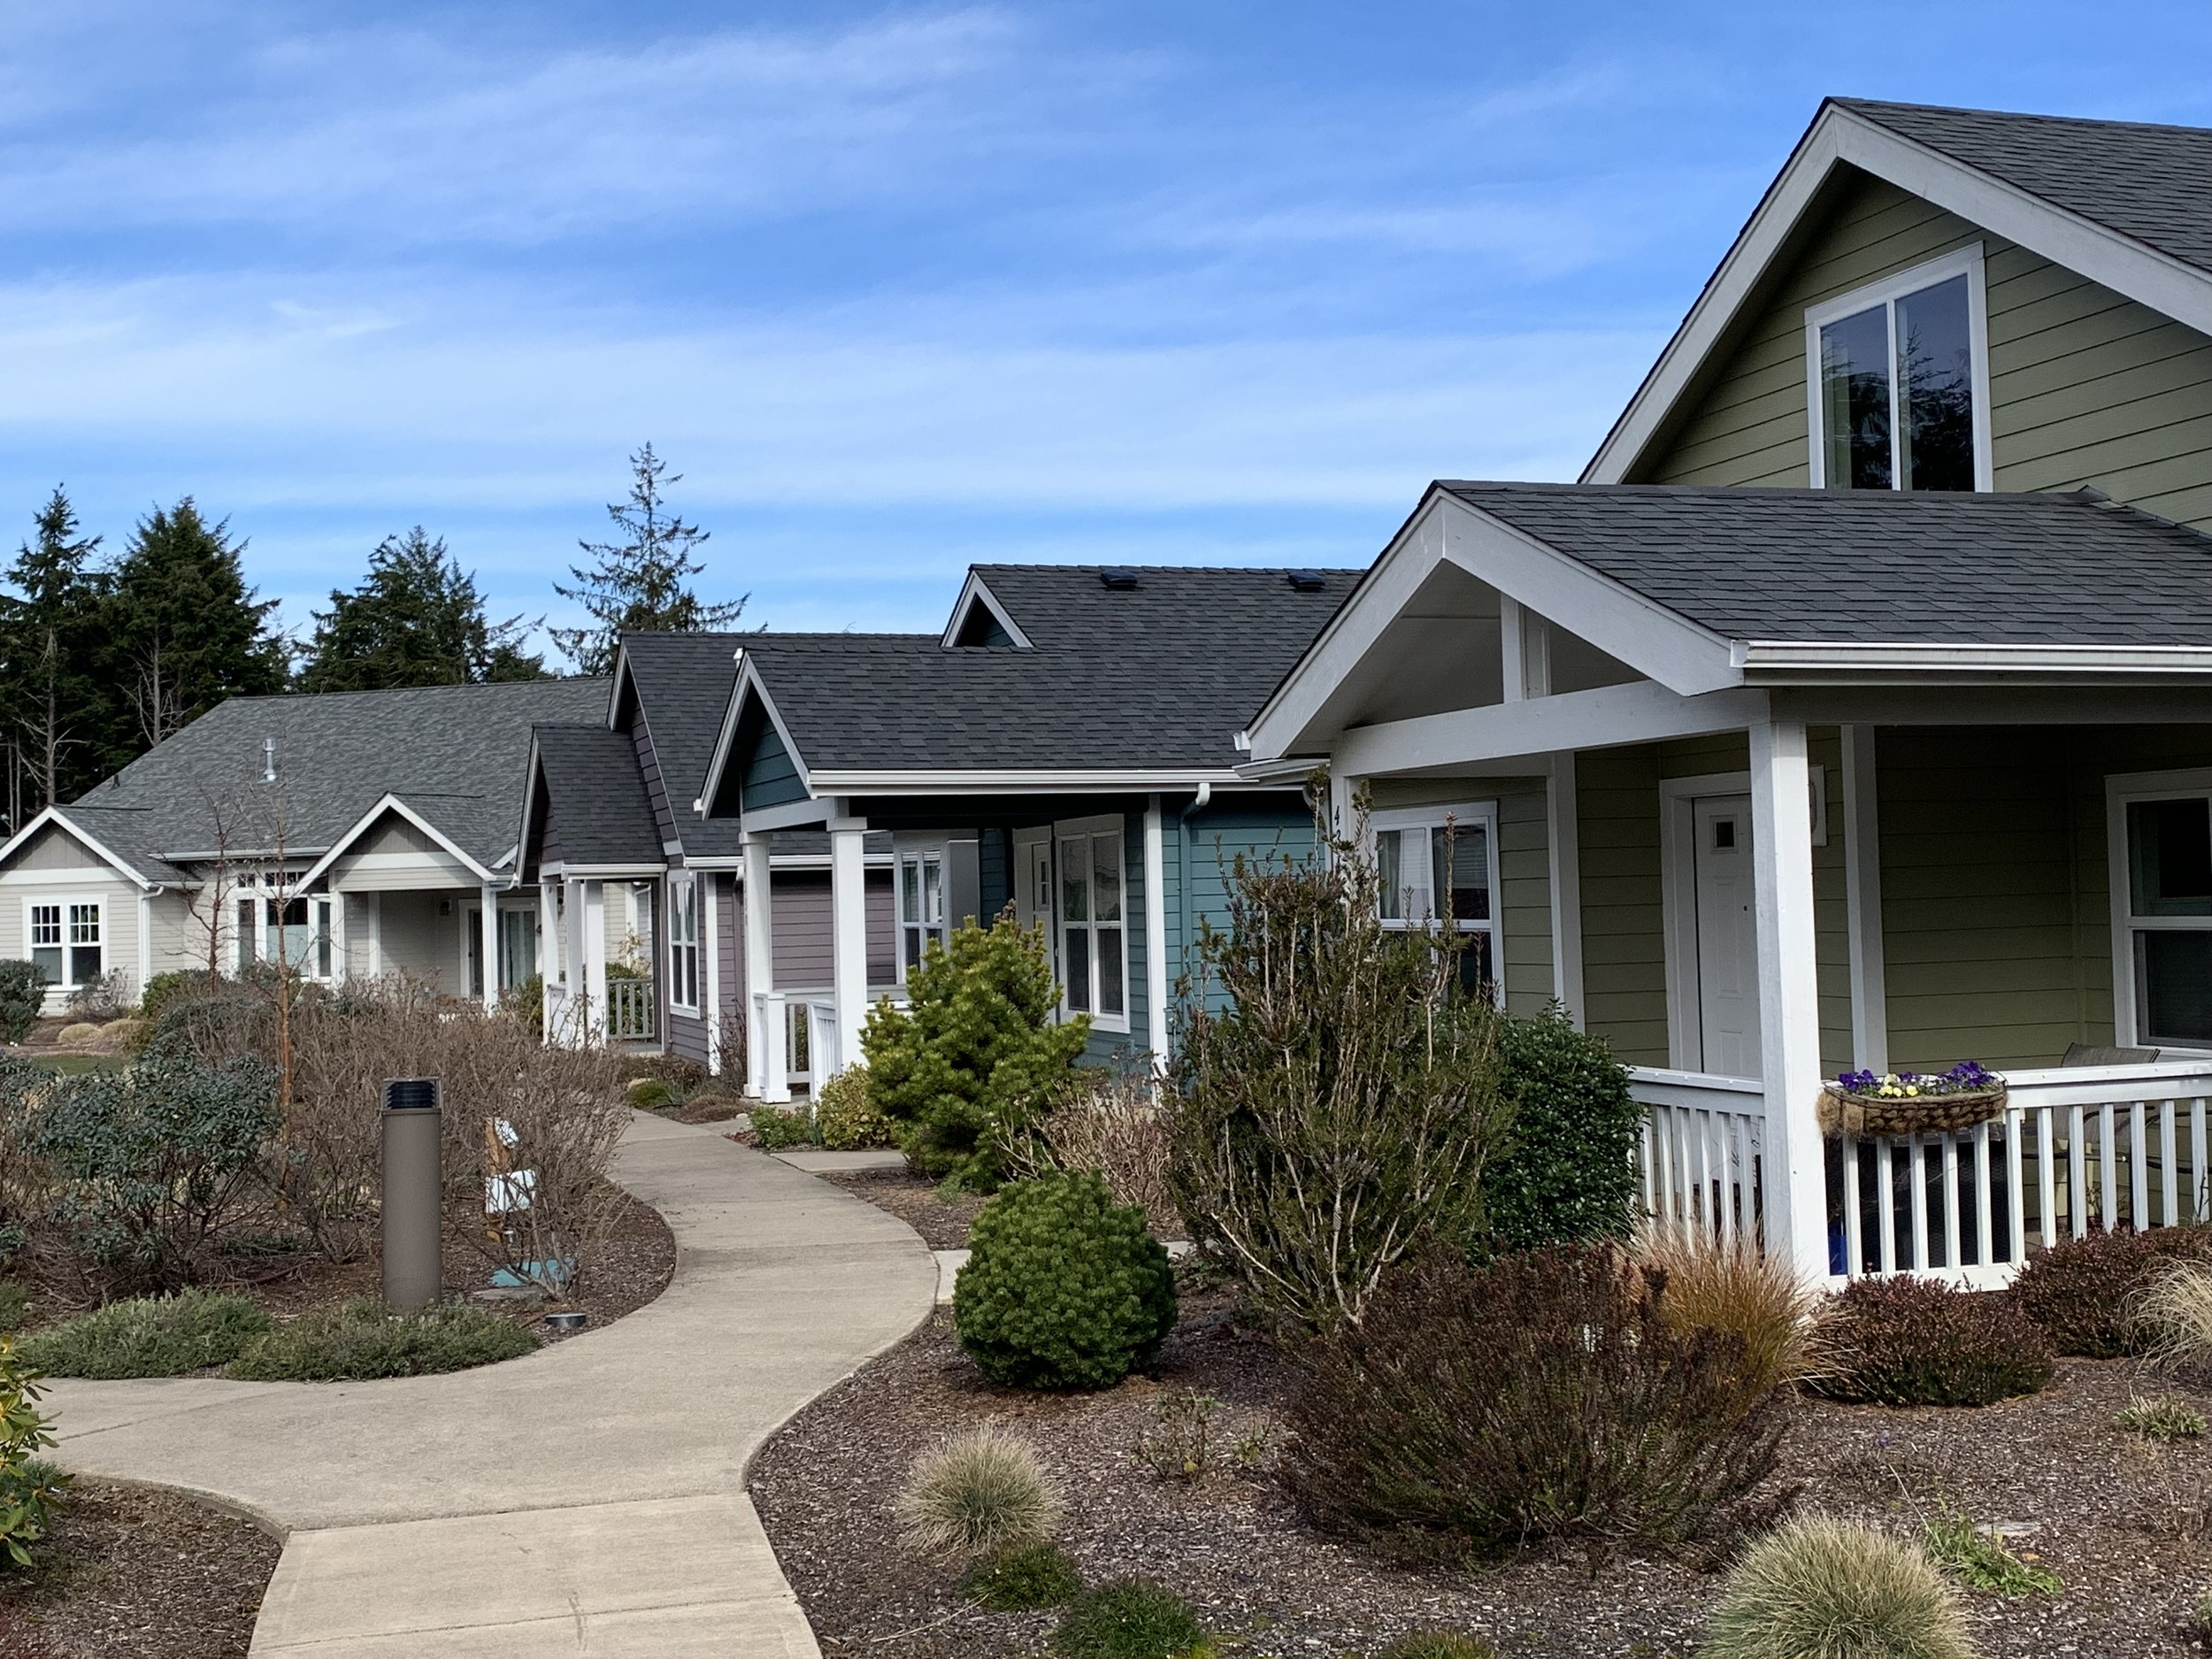 Wilder Cottage Cluster Development in Newport, OR (Credit: Andrew Parish, AICP)